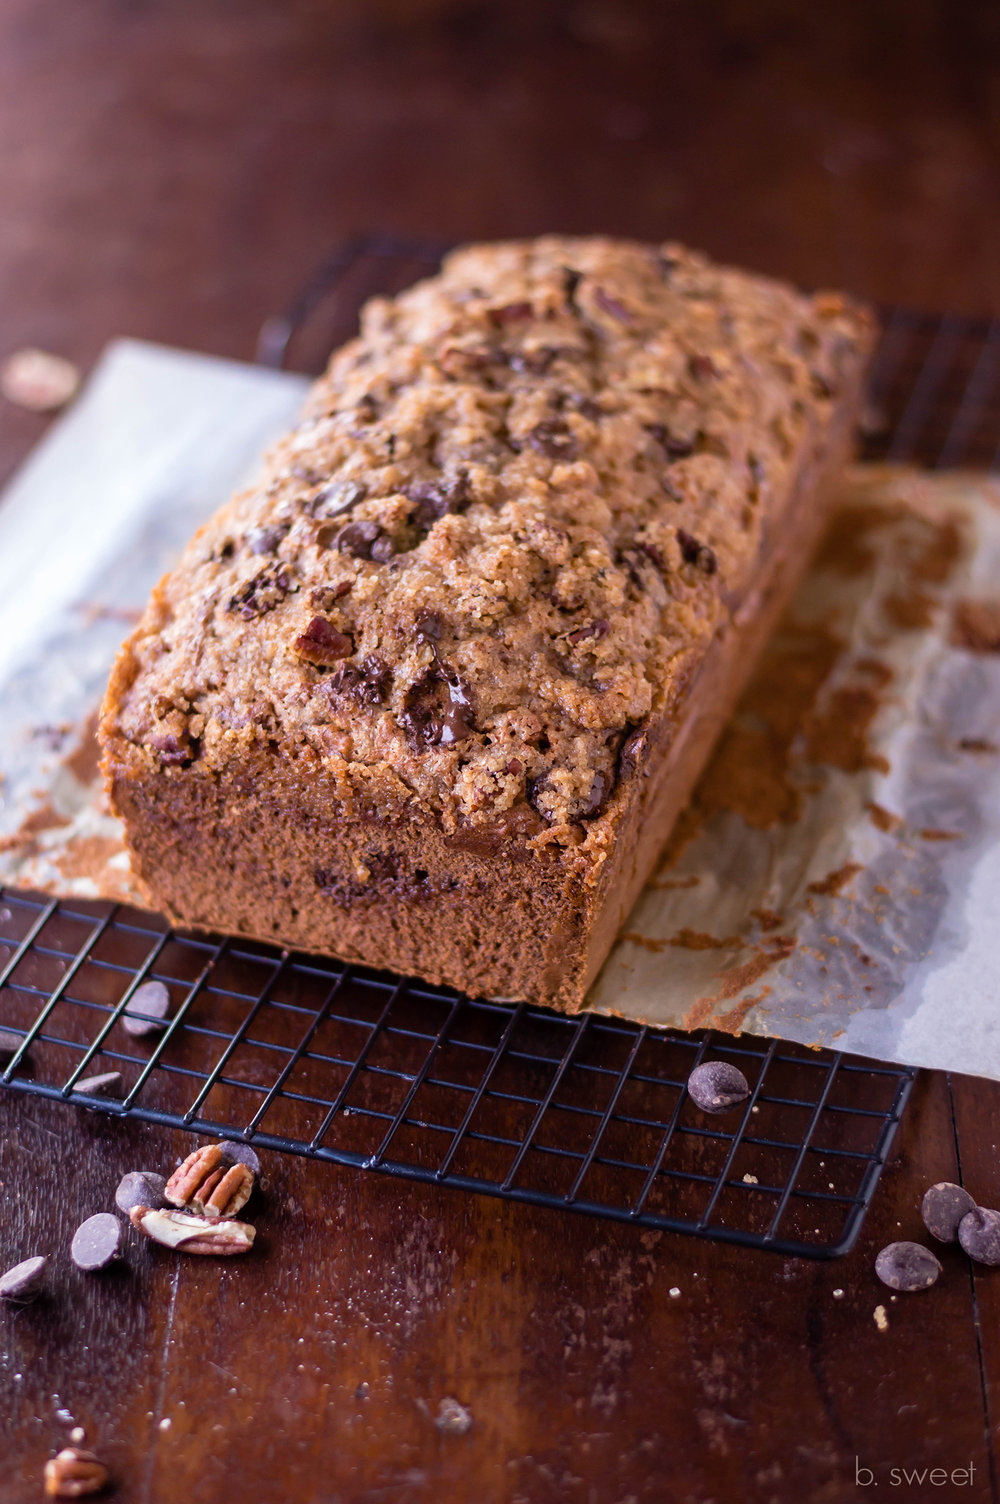 Brown Butter Banana Bread with Chocolate Pecan Streusel  - b. sweet